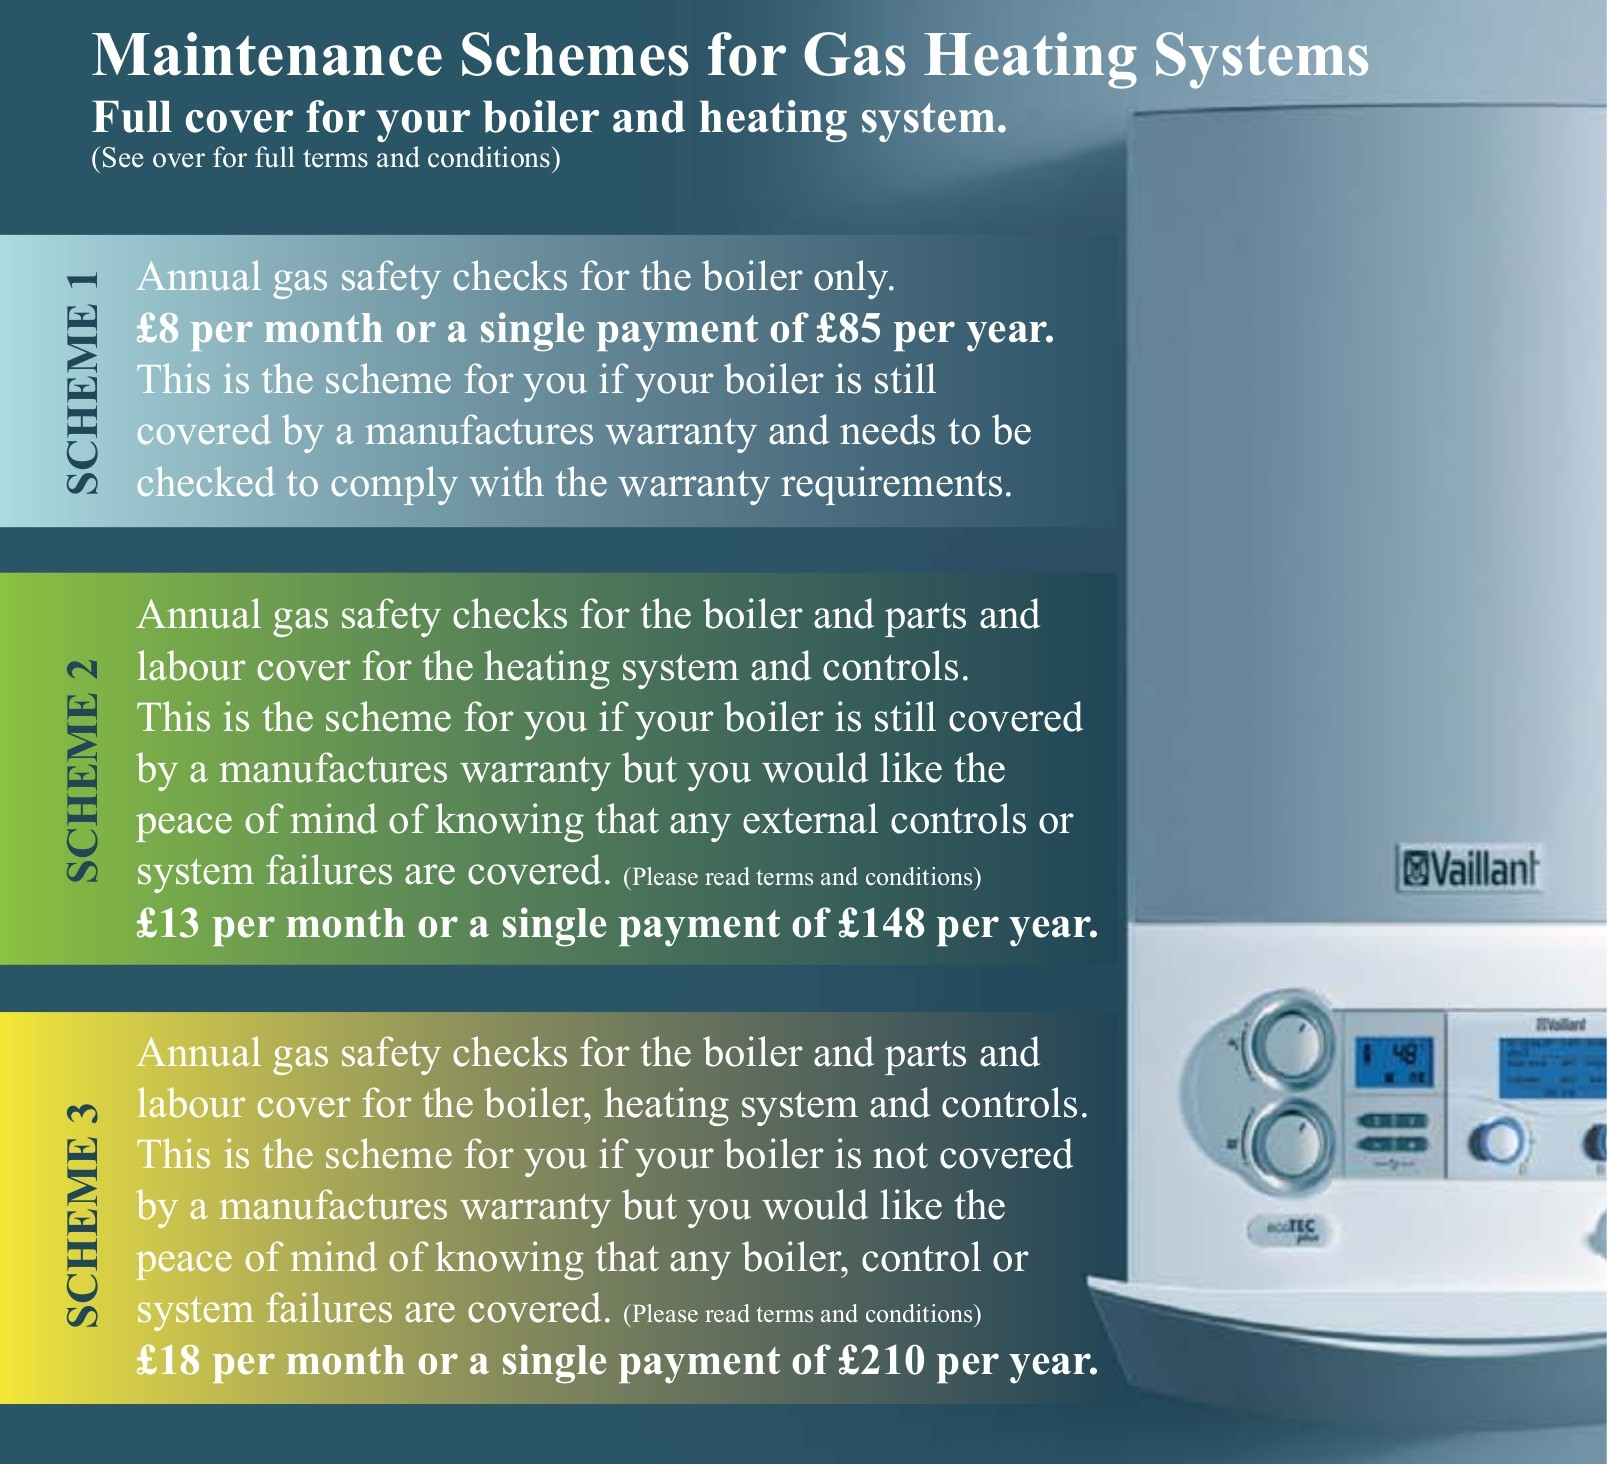 wiltshire boiler maintenance Maintenance Schemes for Gas Heating Systems